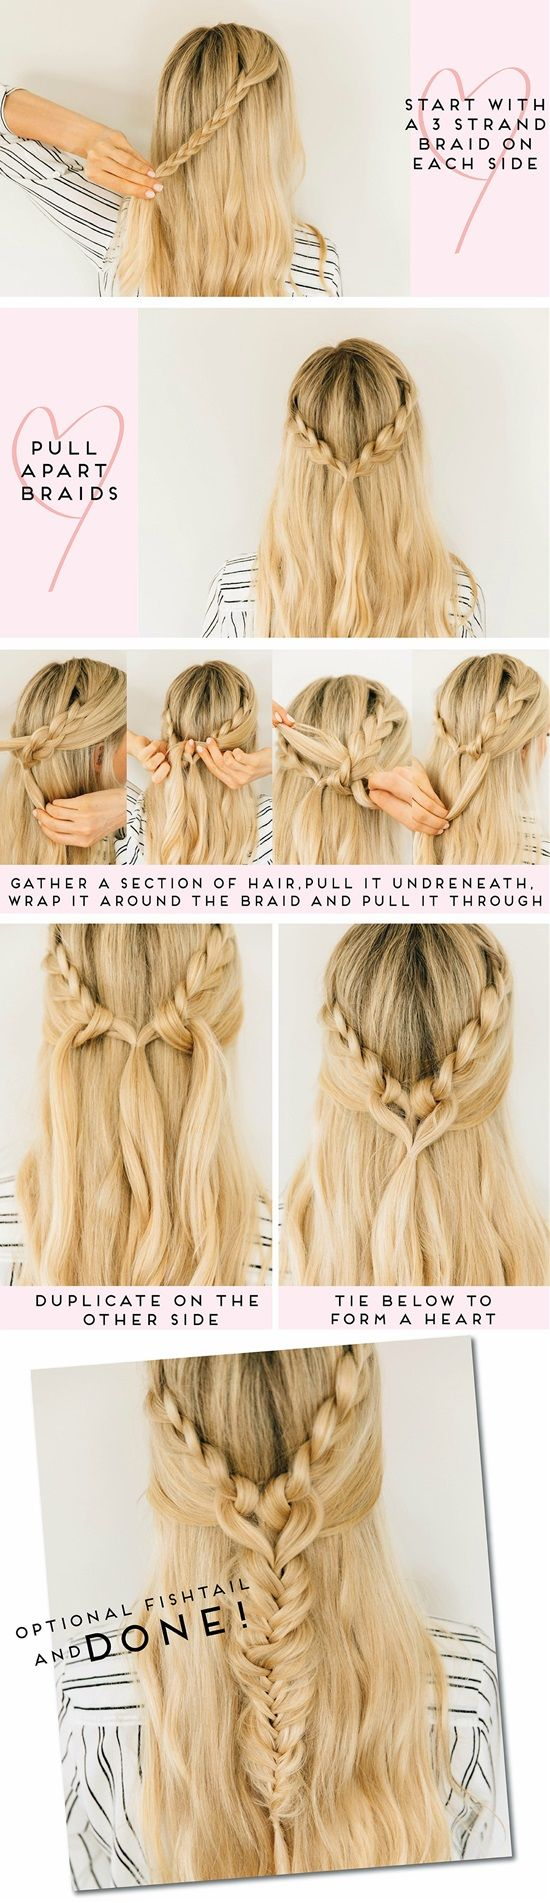 best beautiful hair ideas images on pinterest beleza braid